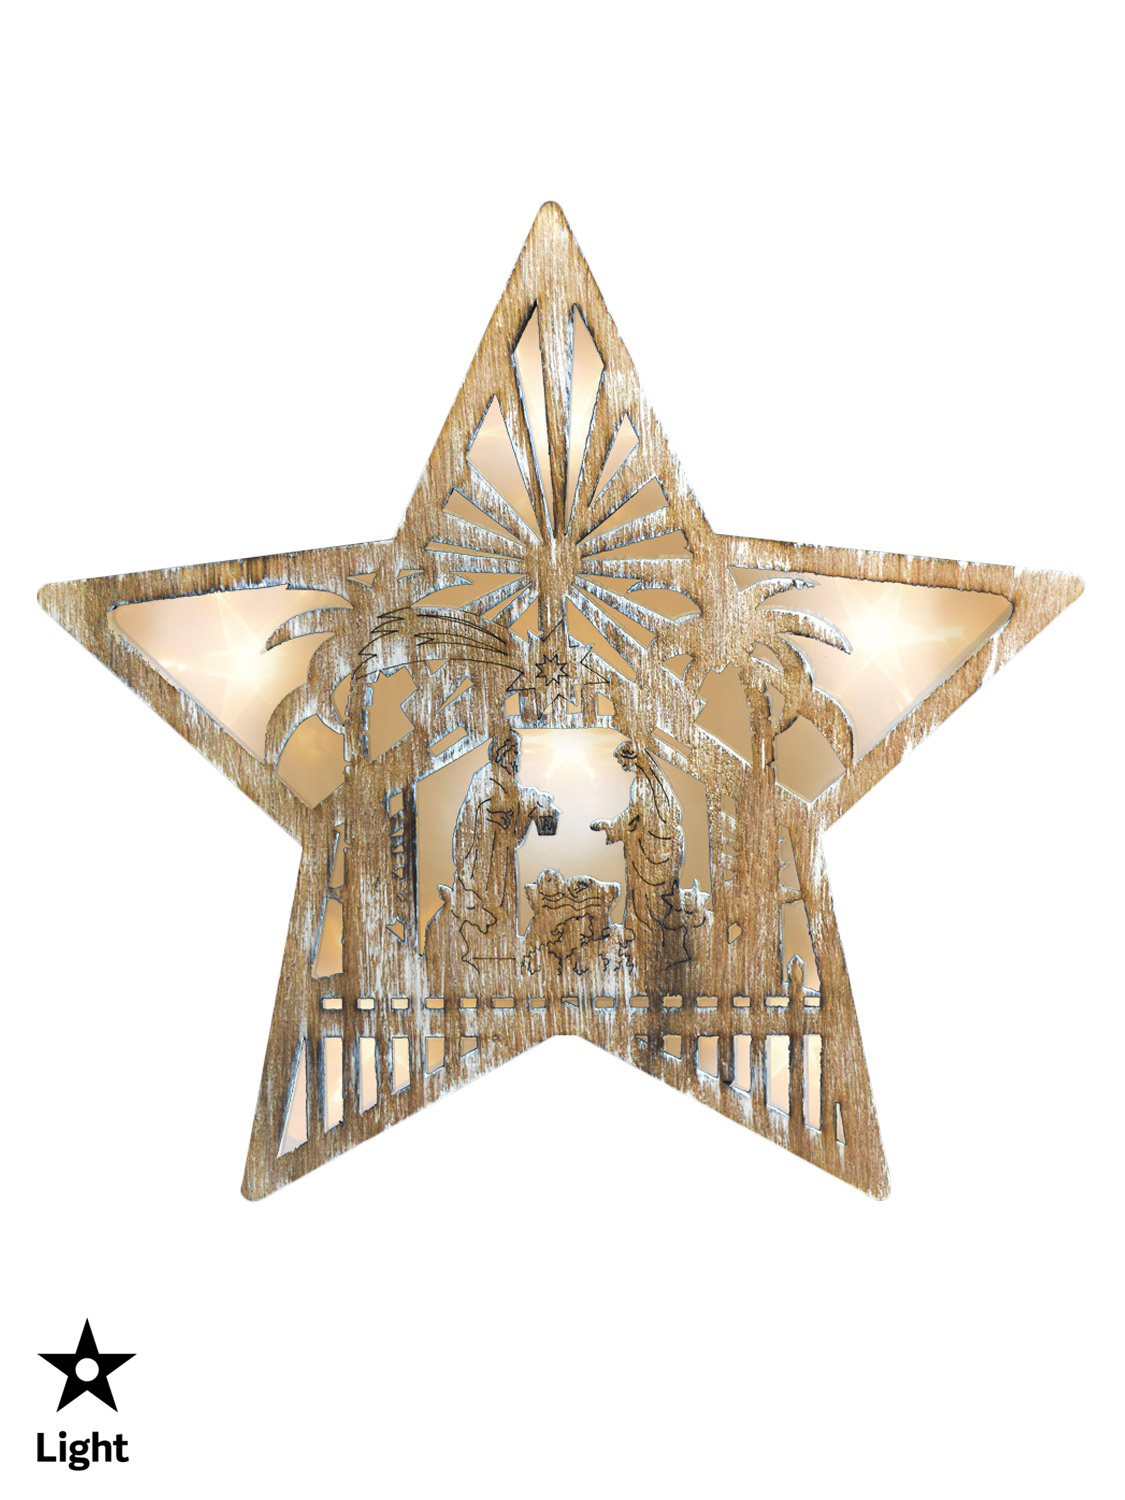 Wooden-Light-Up-Cut-Out-Star-Christmas-Decoration-Picture-Pre-Lit-LED-Nordic 縮圖 5